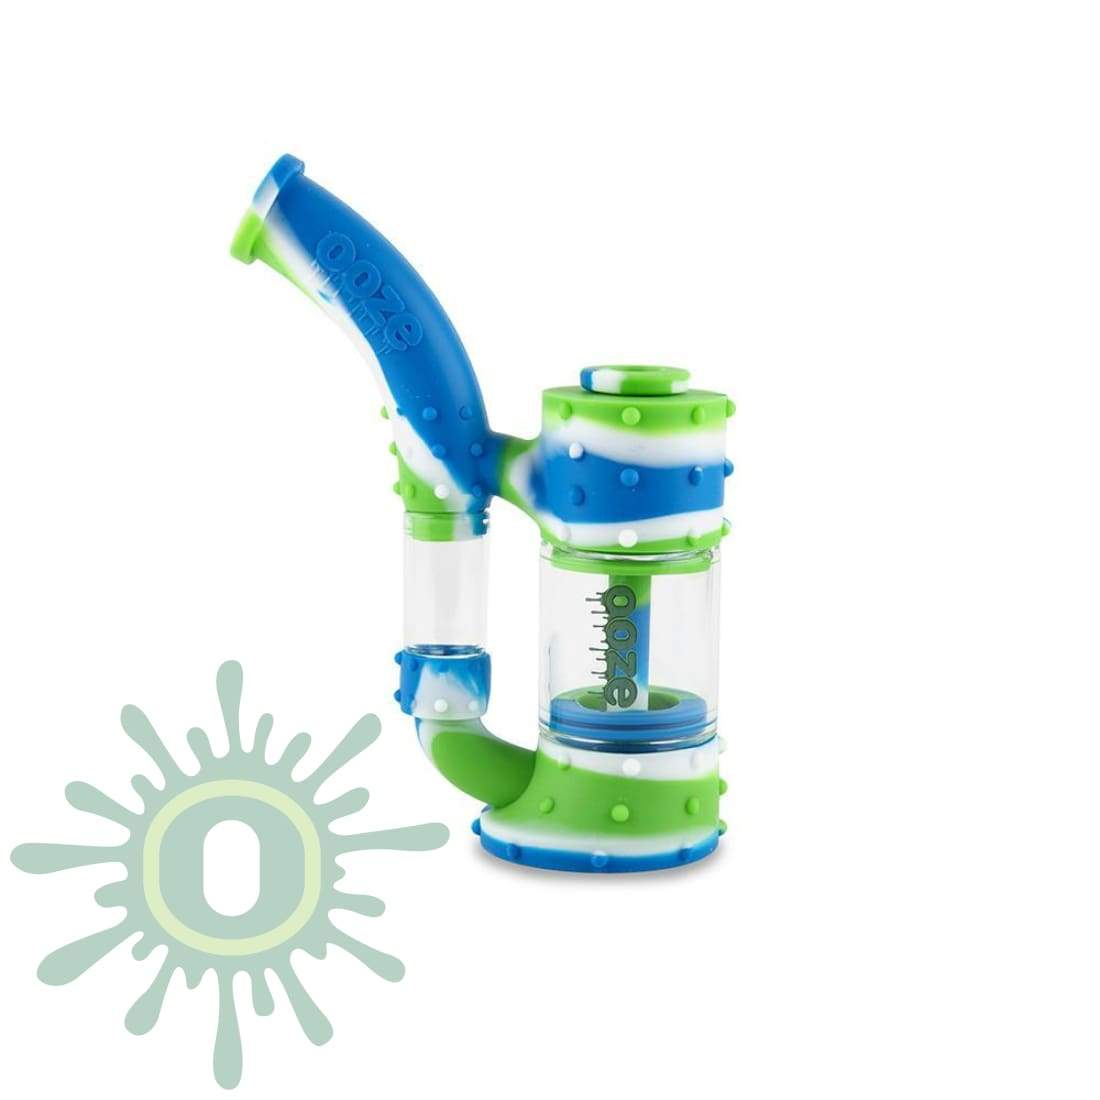 Ooze Stack Pipe Silicone Bubbler - Blue / White Green And Glass Water